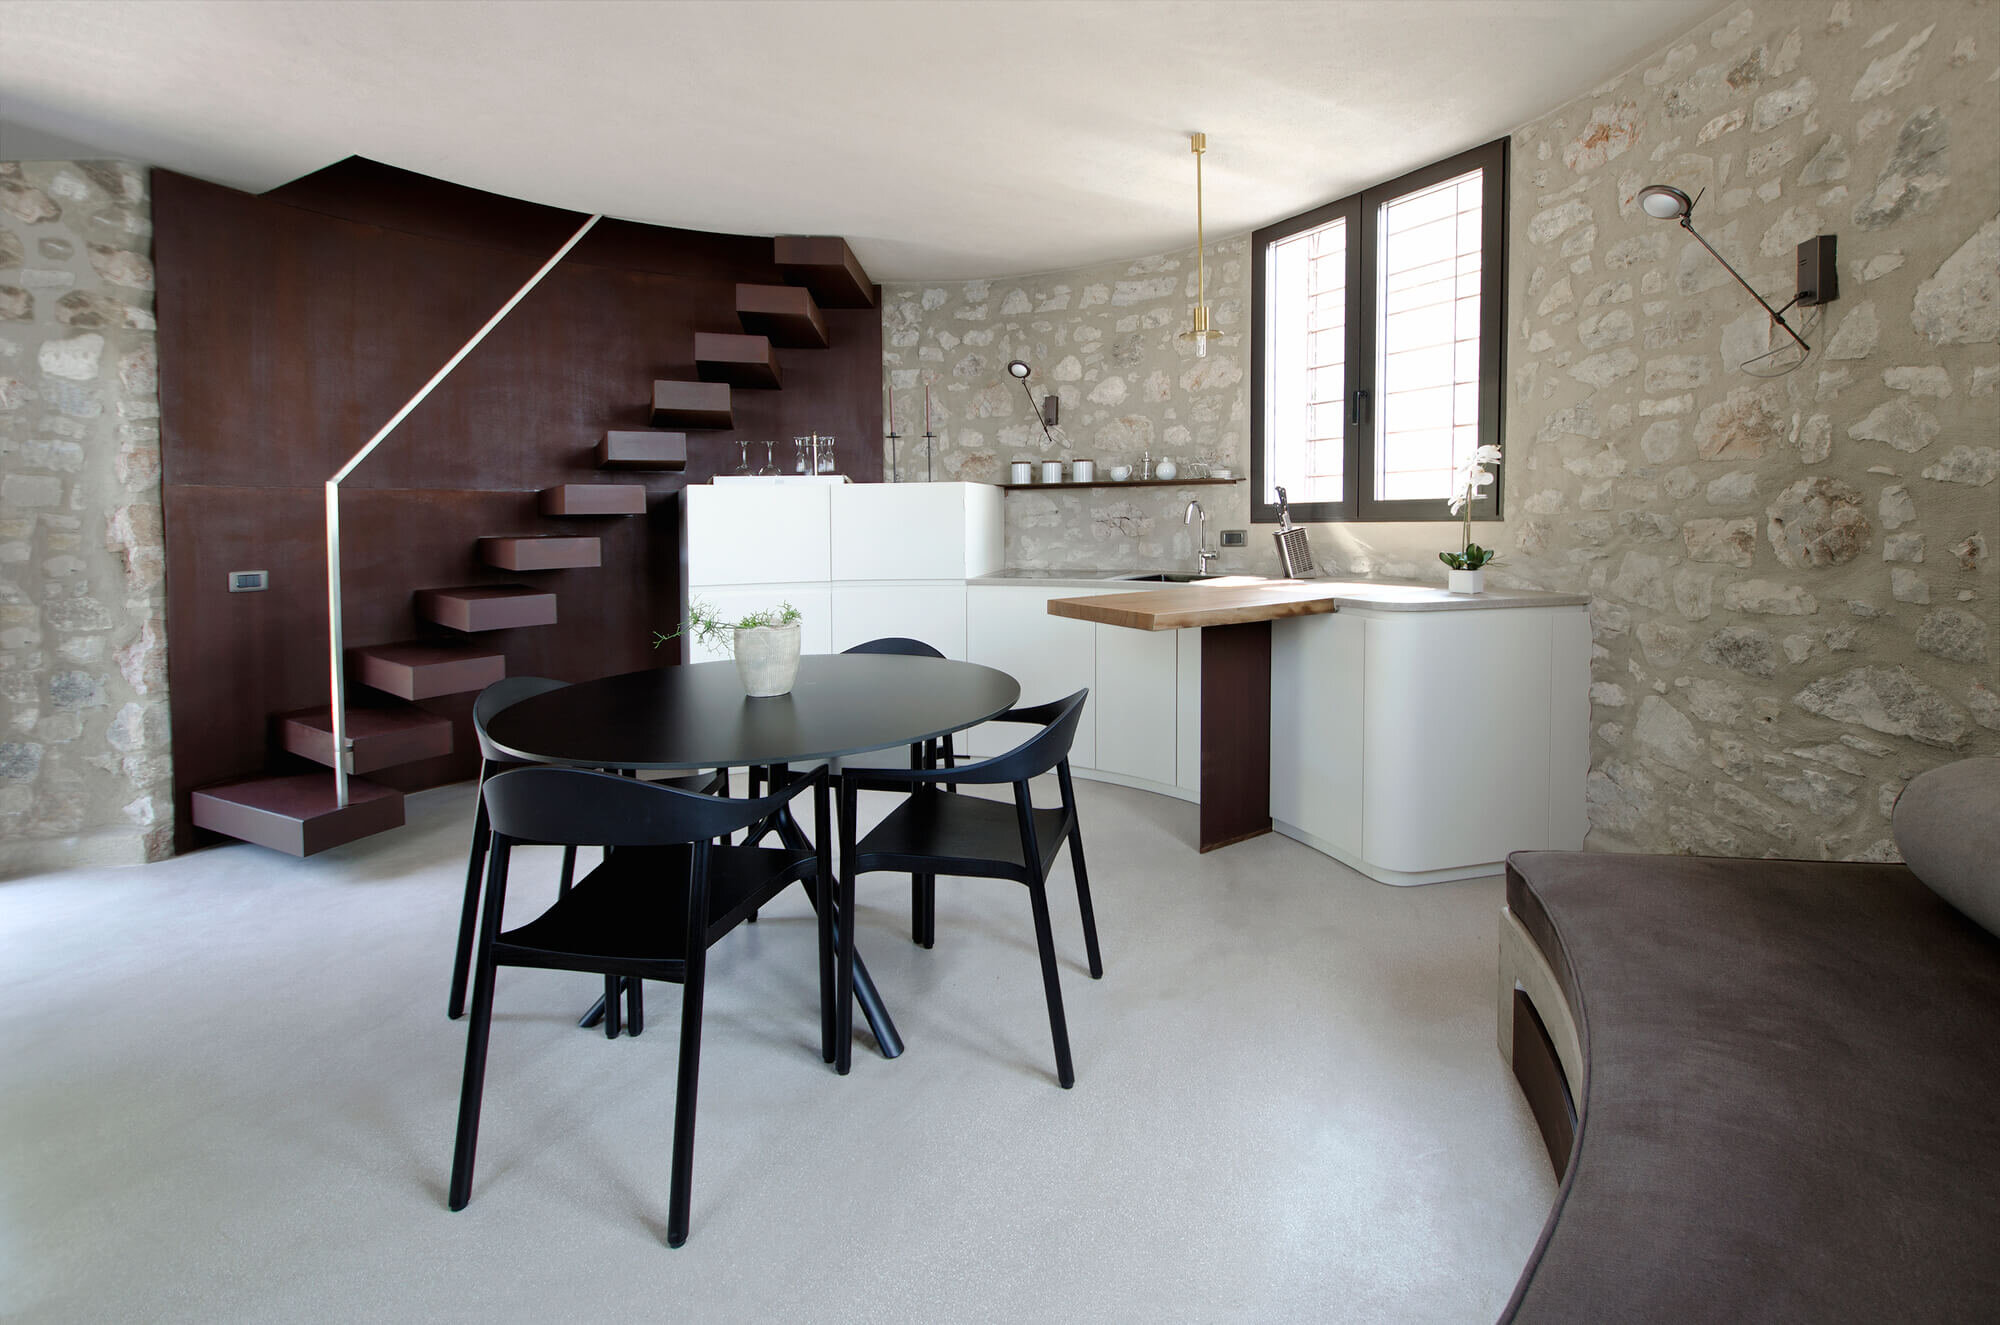 A-New-Life-for-a-Little-Tower-studio-aledolci&co-Italy-0